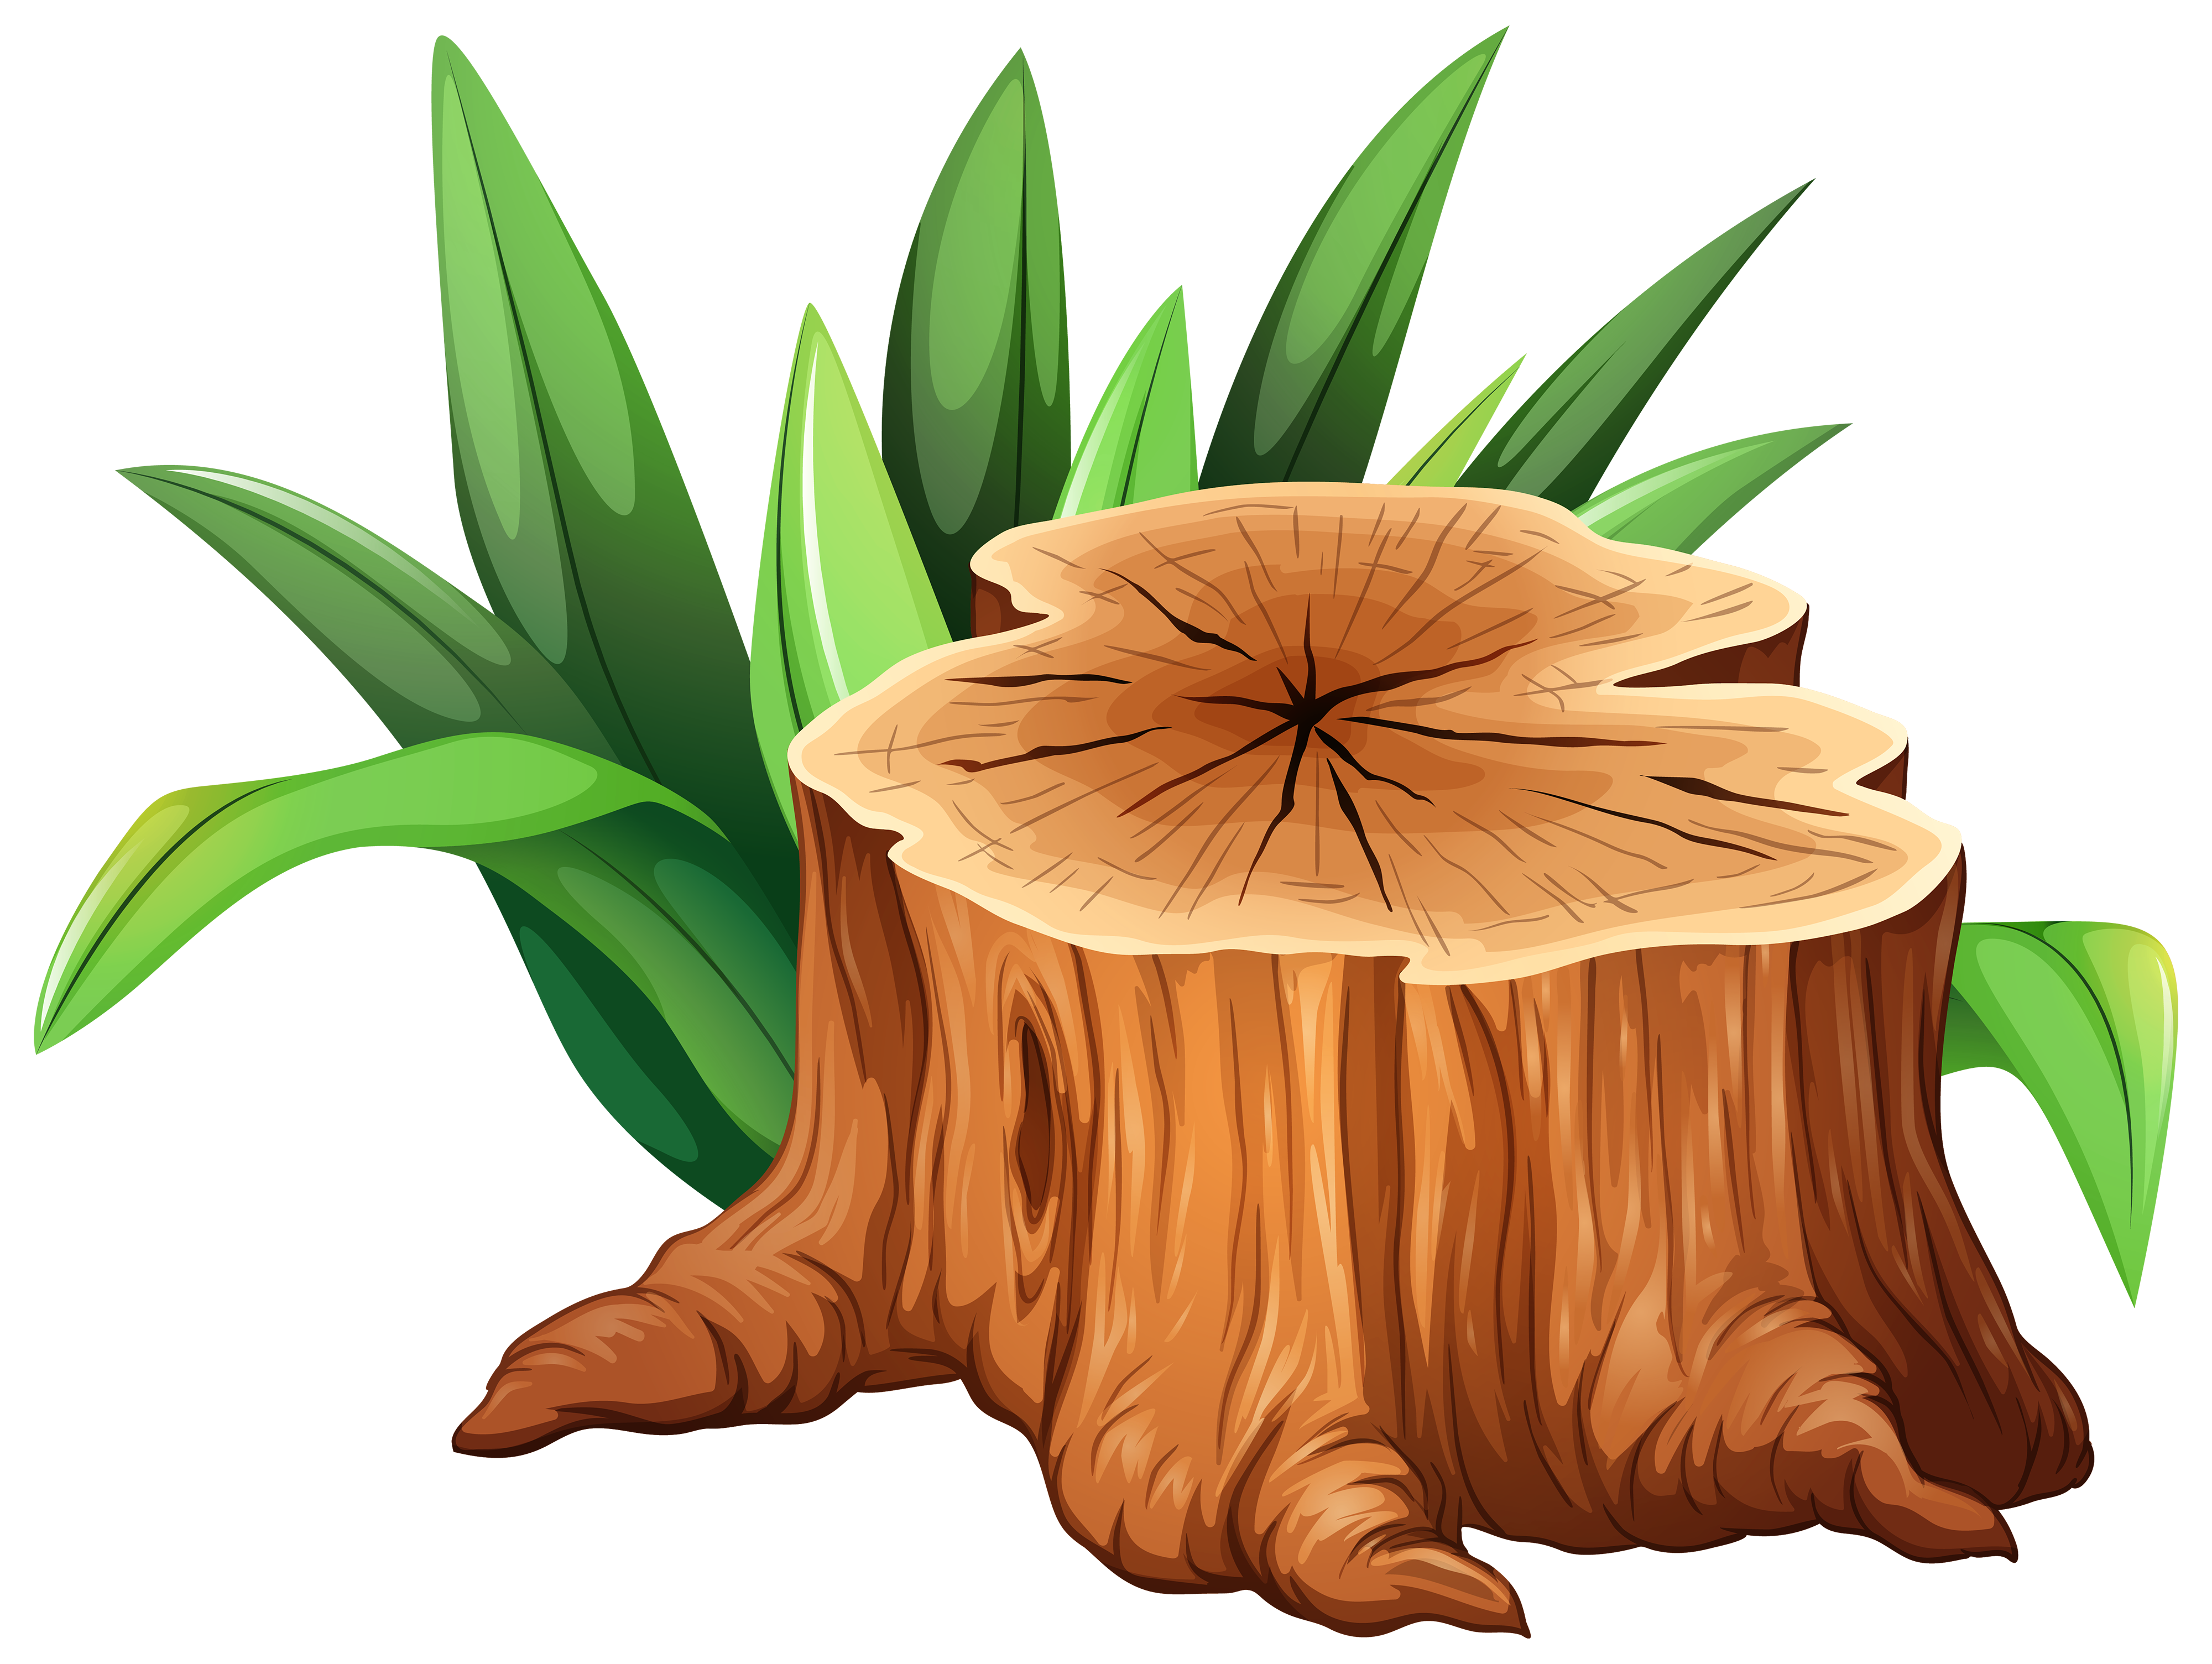 Stump clipart. Tree png image gallery